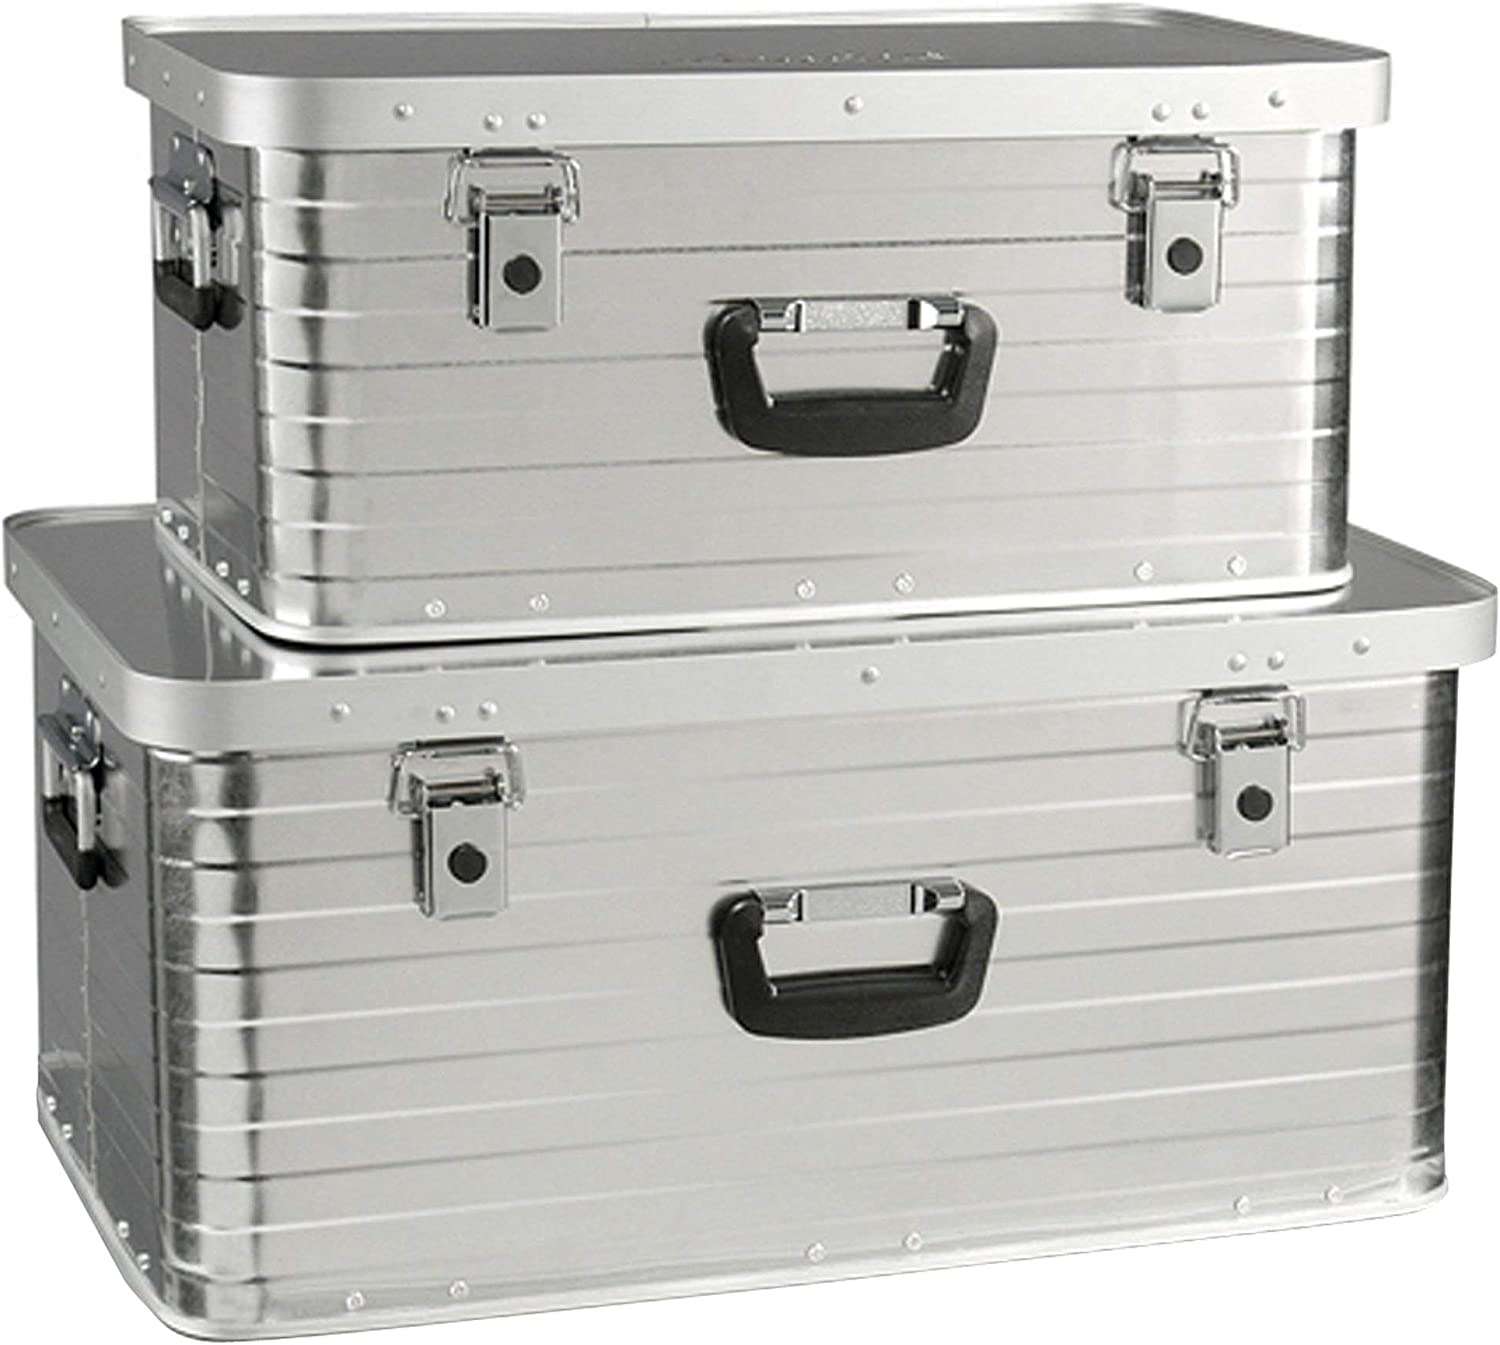 Heco Enders Toronto Storage Box Set 2 (47 l, 80 l), Silver: Amazon.es: Jardín